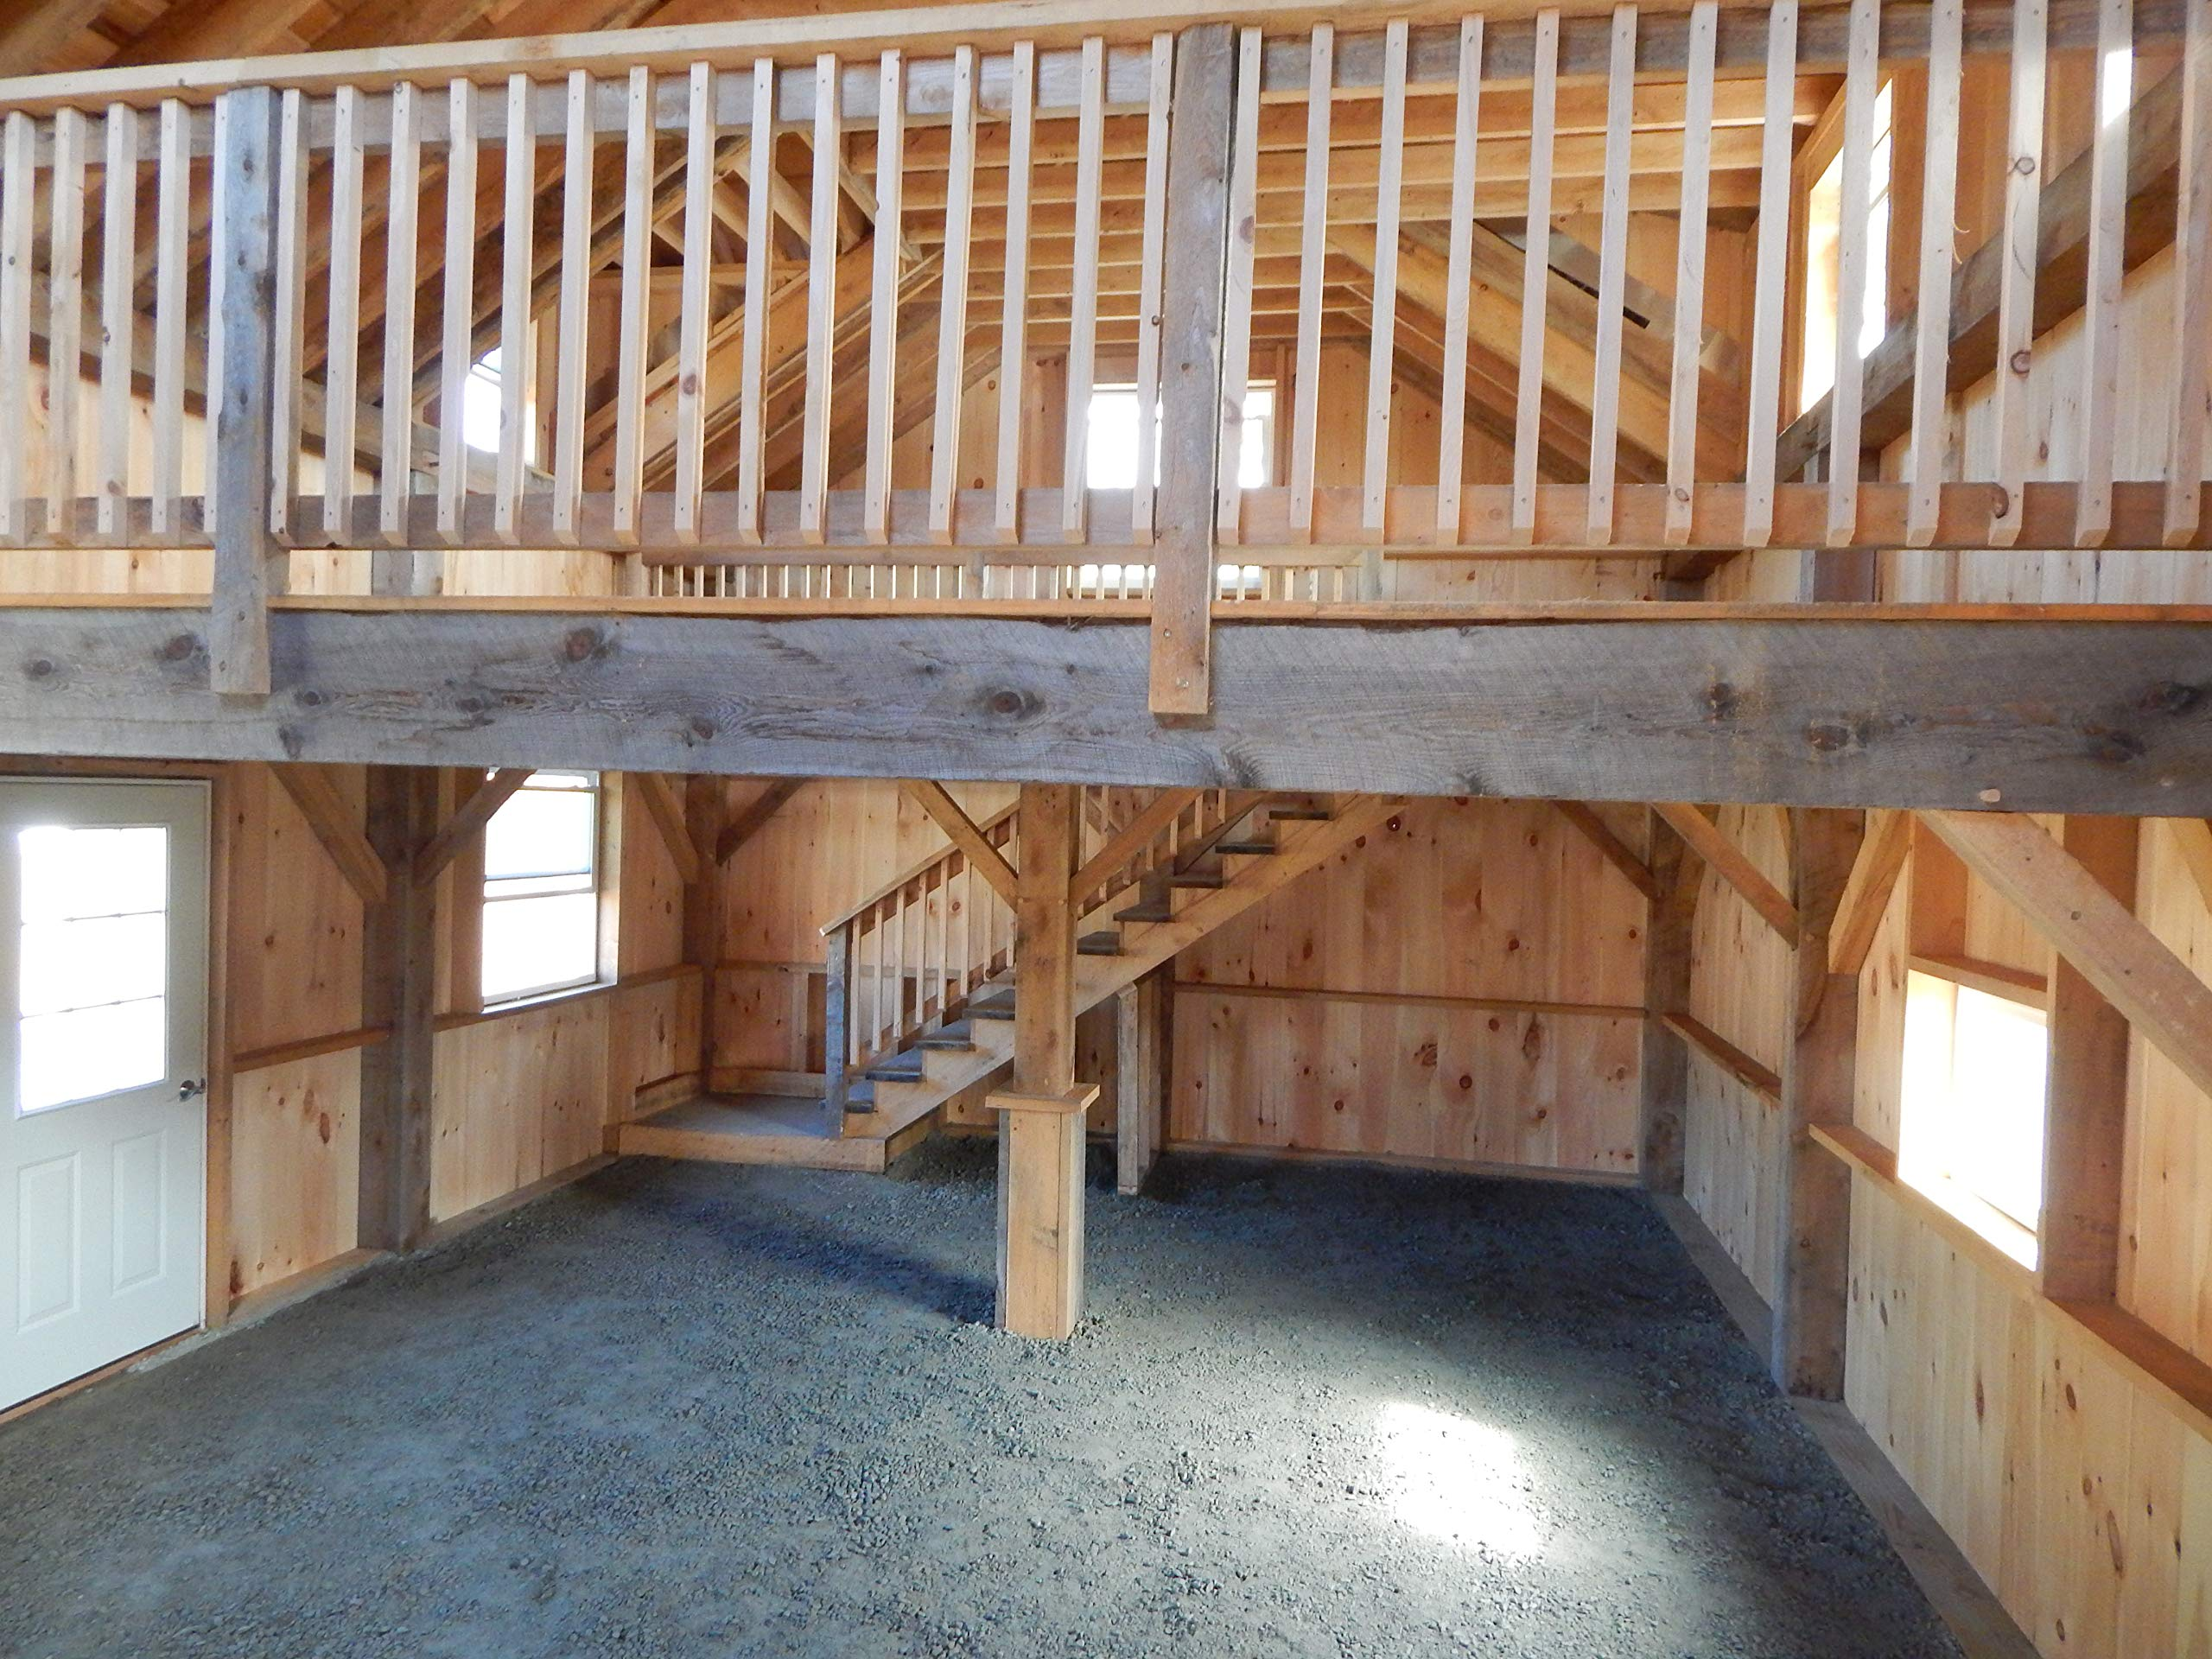 Mortise and Tenon Timber Frame - 20x30 Cabin with Full Loft - Step-By-Step DIY Plans by Jamaica Cottage Shop, Inc.